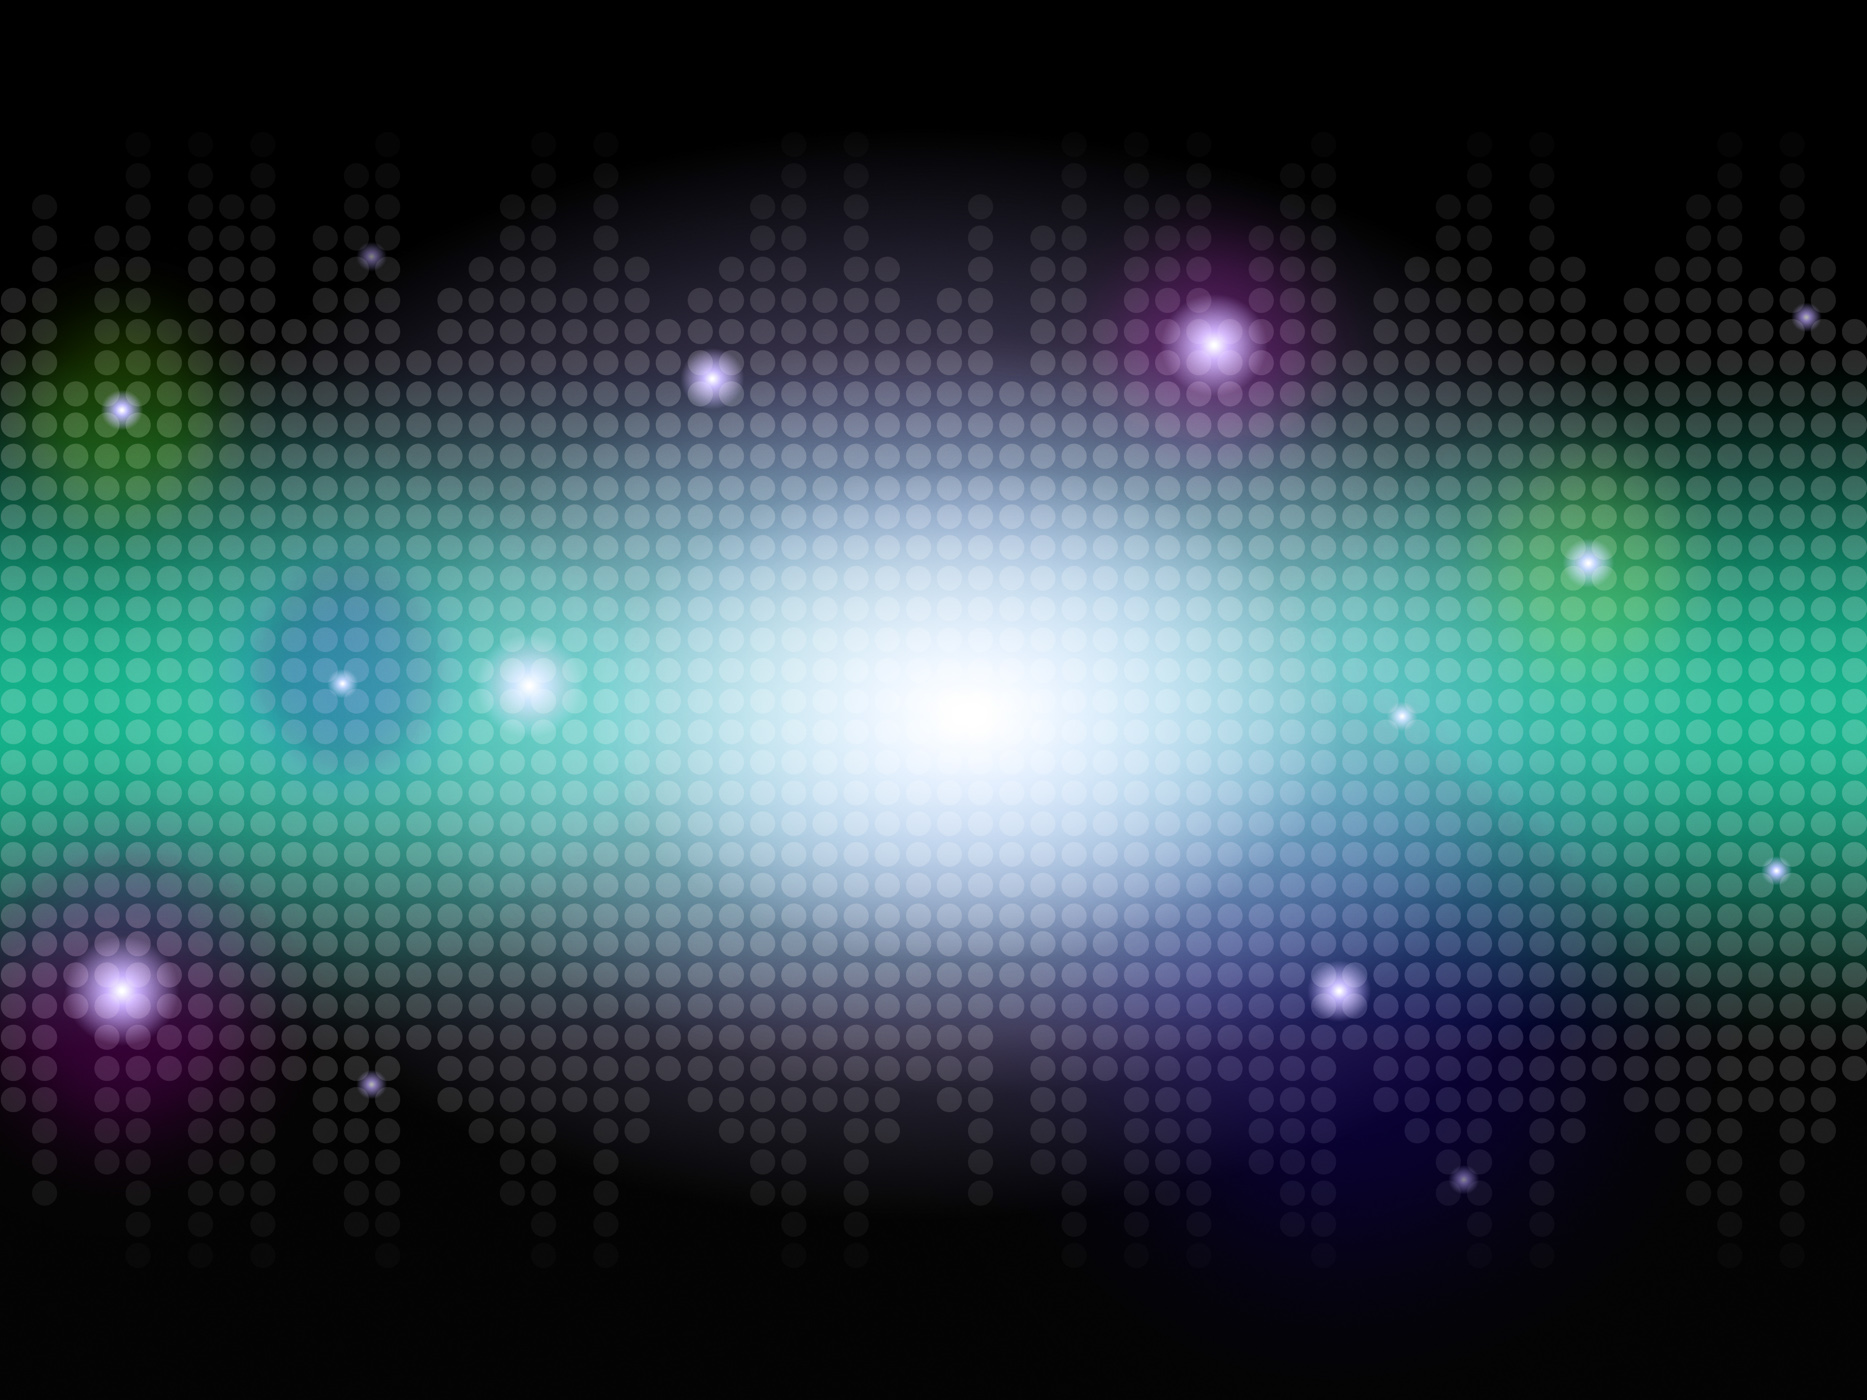 Light background means luminous aglow and celestial photo